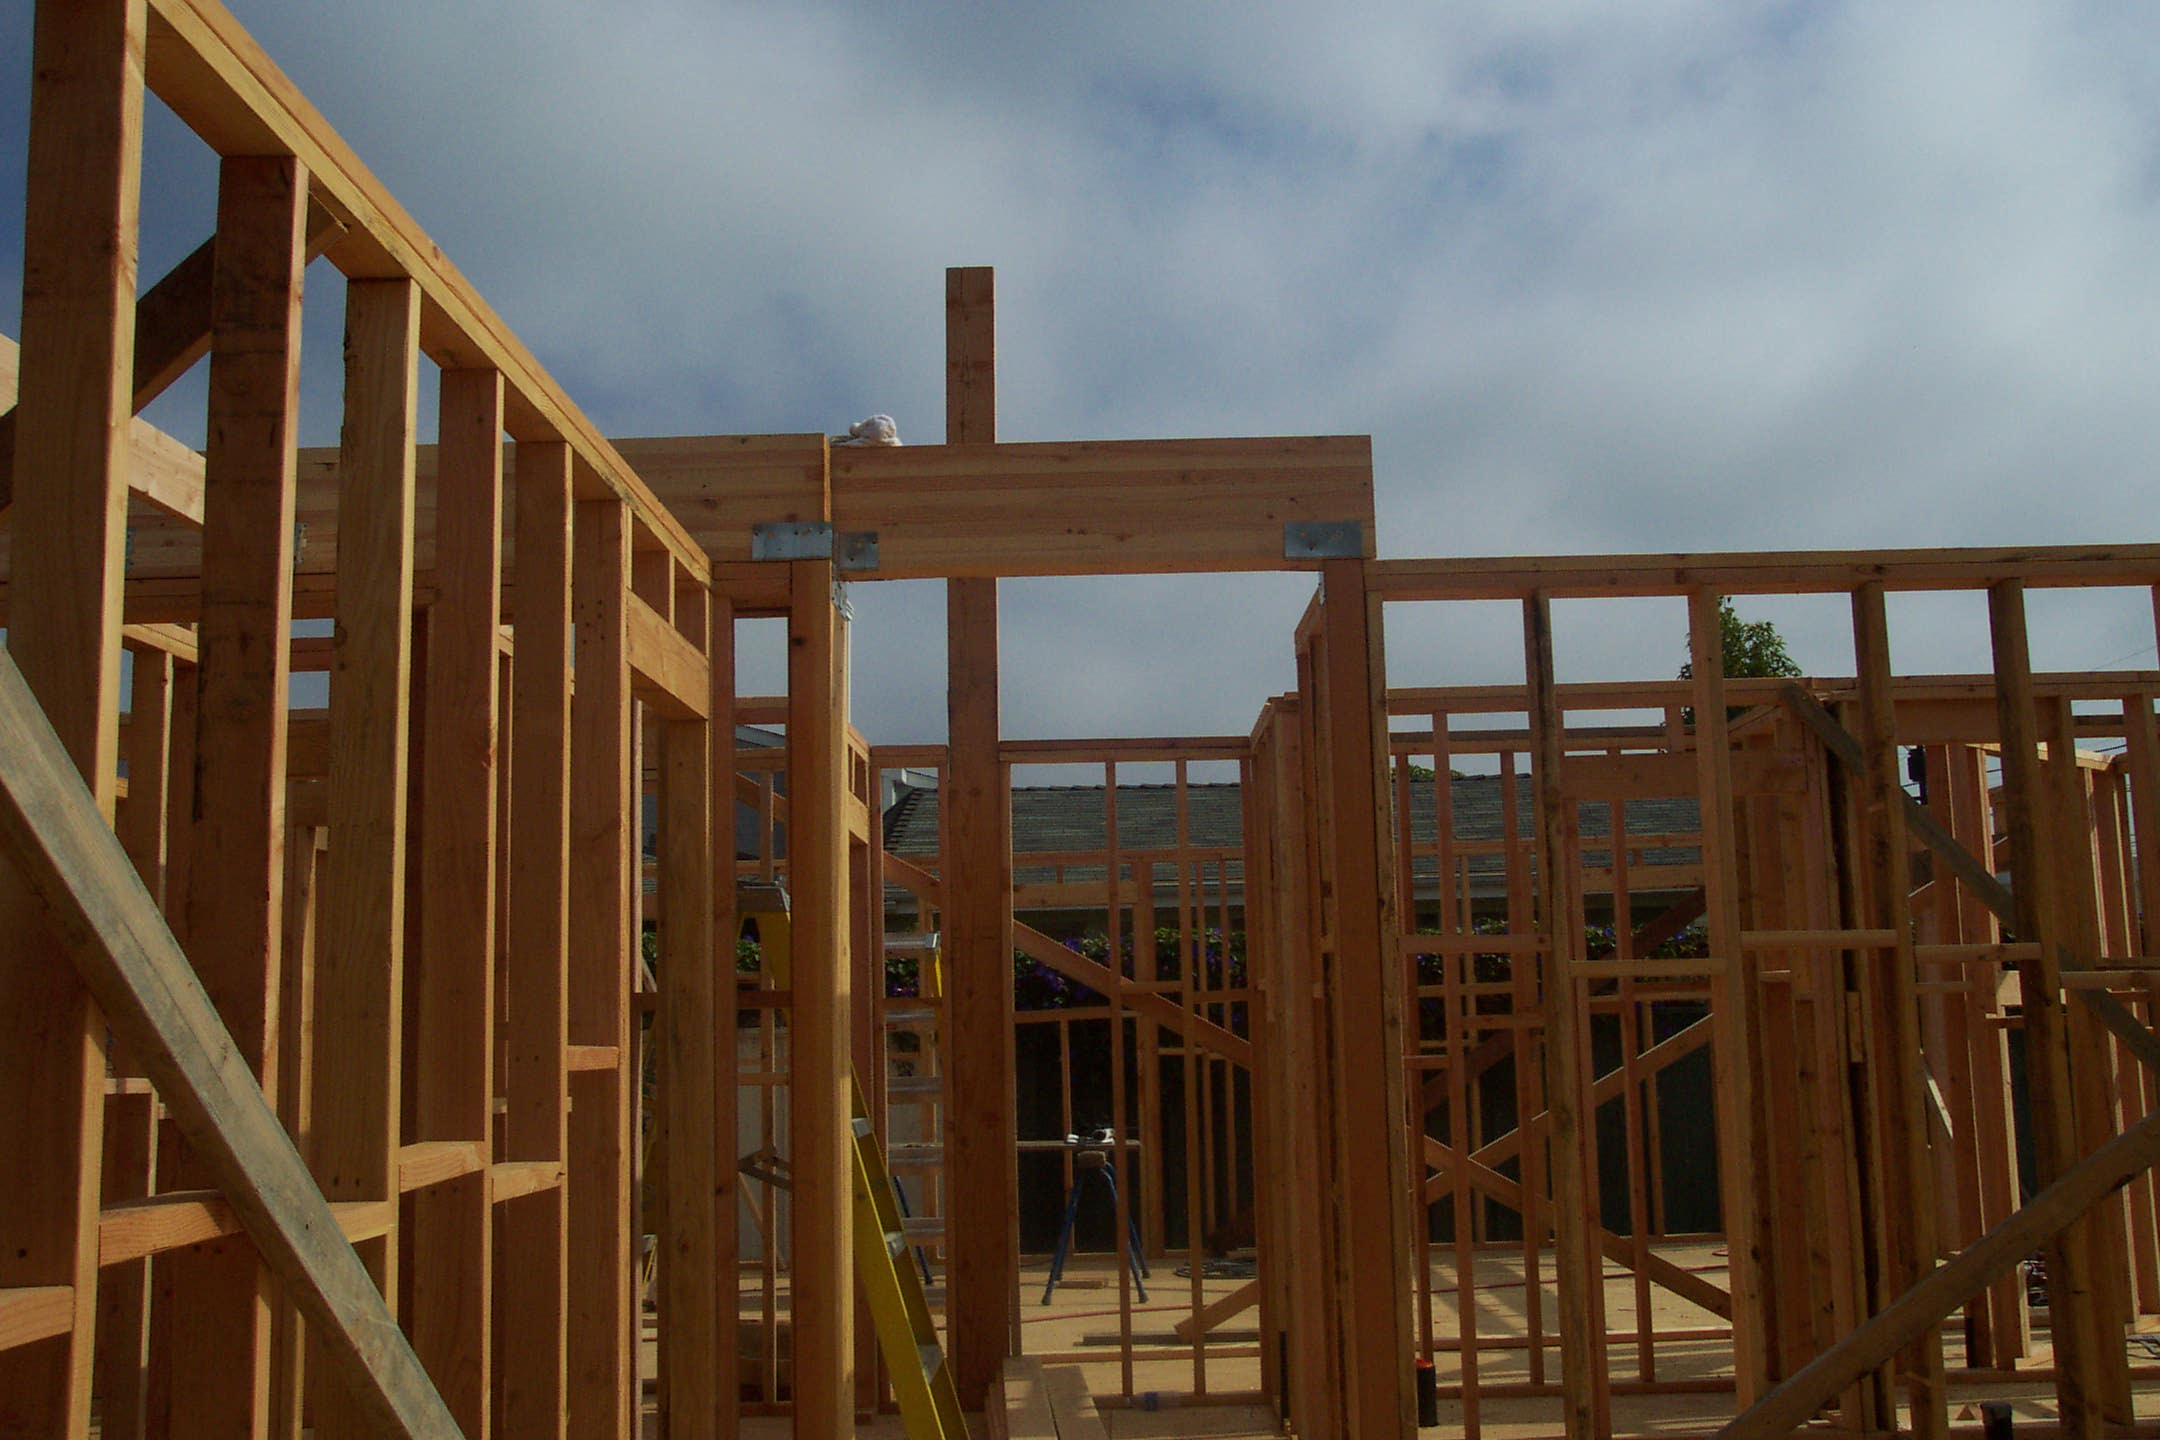 House framing and building ceiling and wall braces for House framing 101